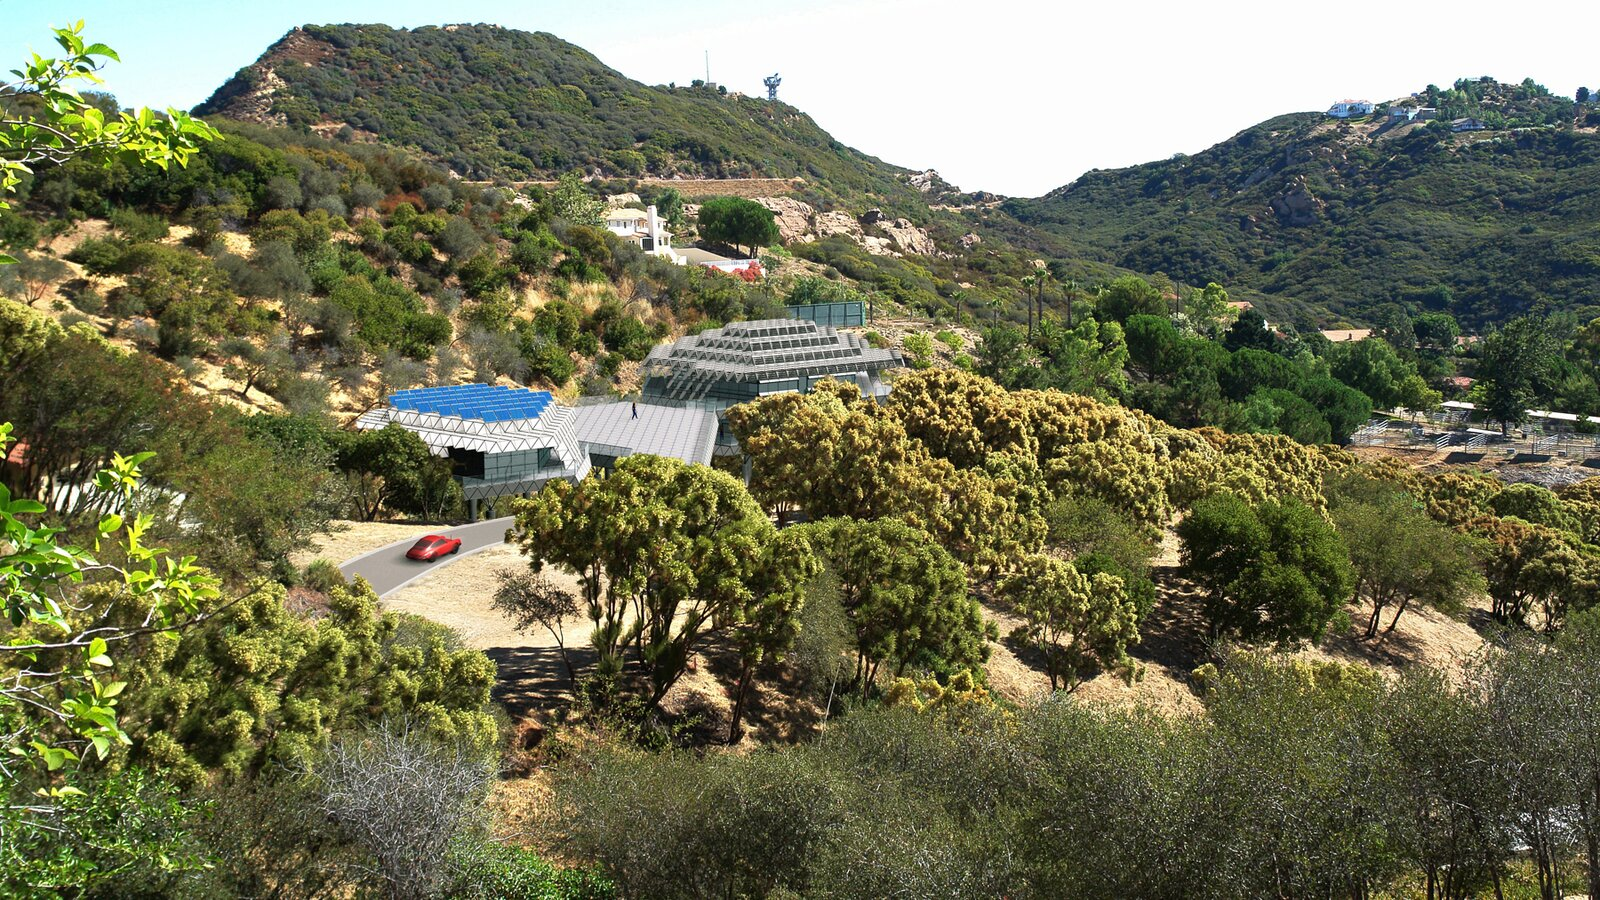 Montage of computer rendering of Ecohouse superimposed in a photograph of the actual project site in the Santa Monica Mountains, Los Angeles County, above Malibu.